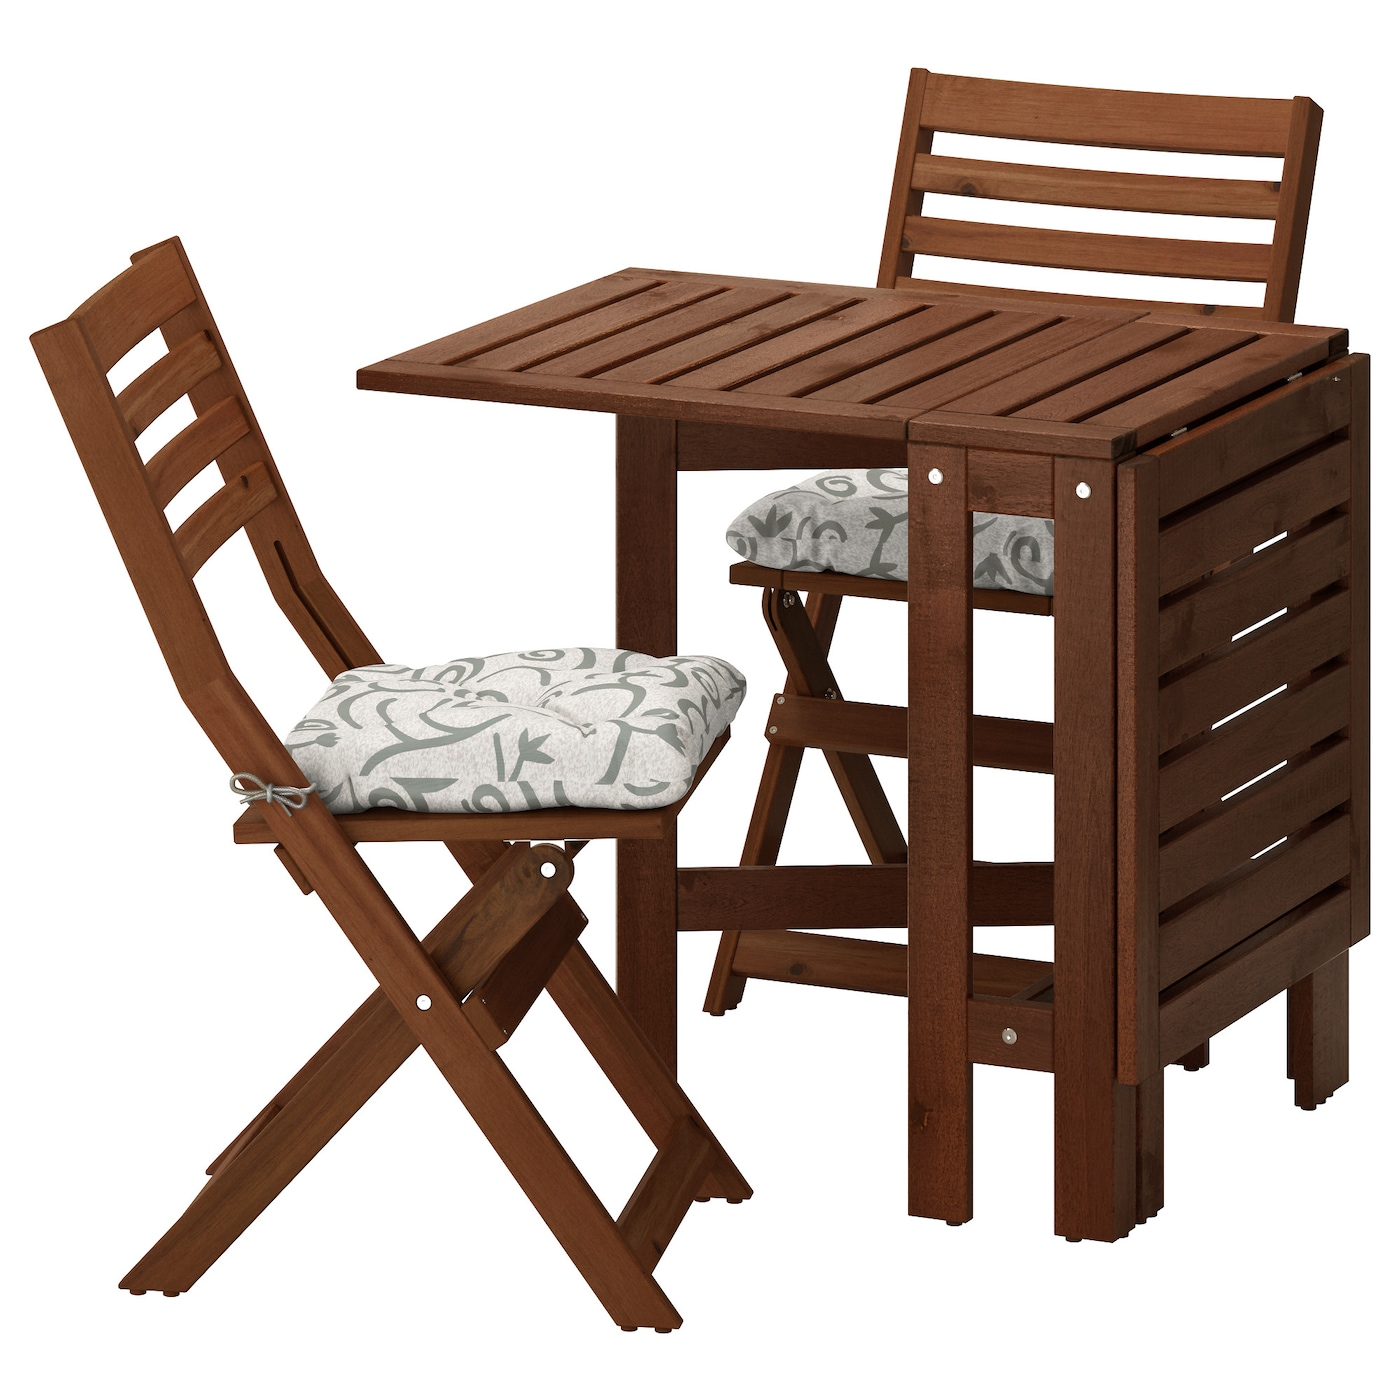 Table de jardin table de terrasse ikea for Table de jardin terrasse